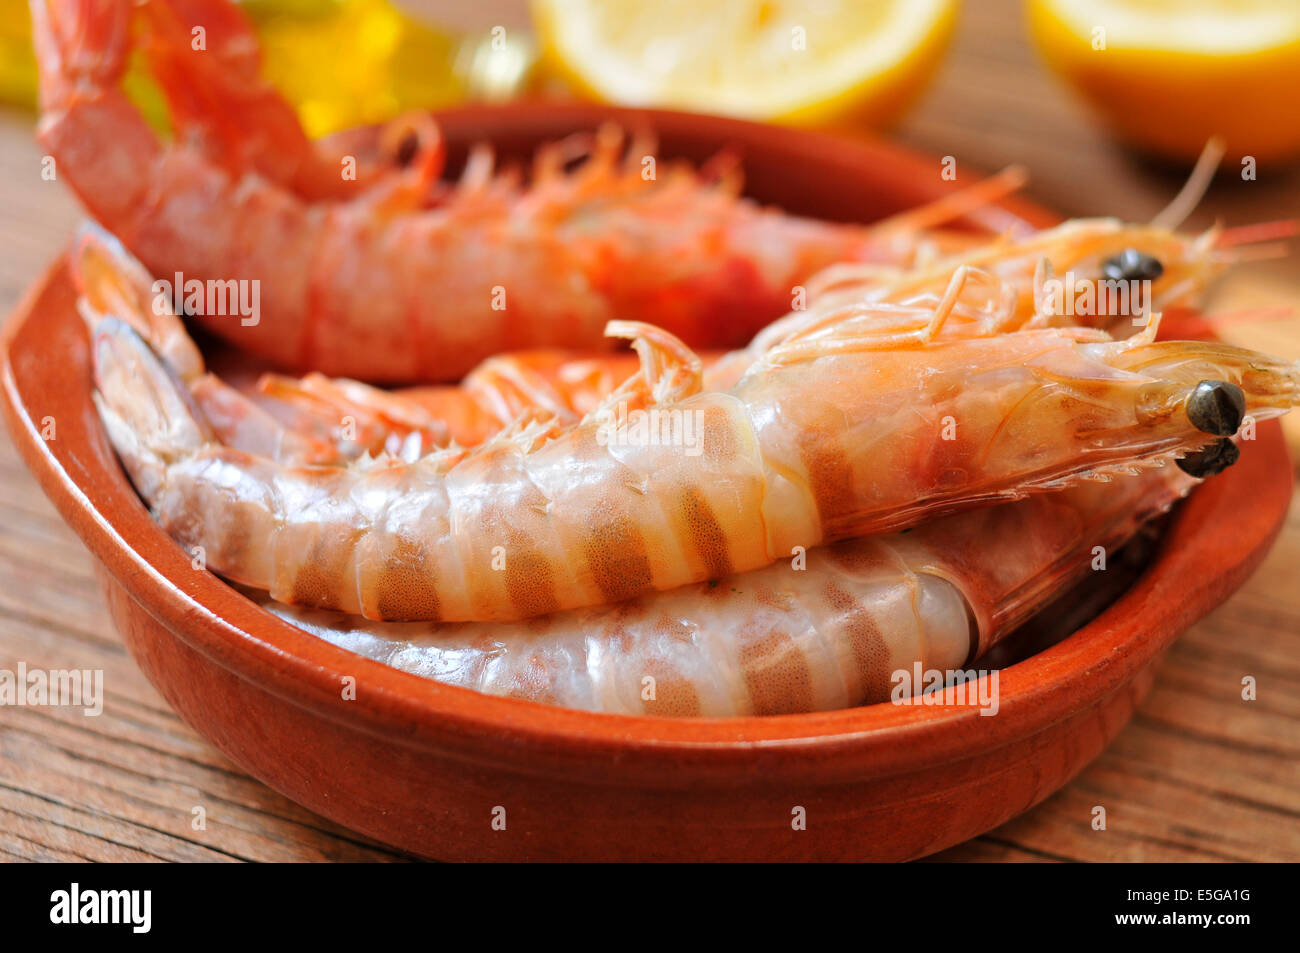 closeup of a earthenware bowl with some fresh raw shrimps on a rustic wooden table - Stock Image